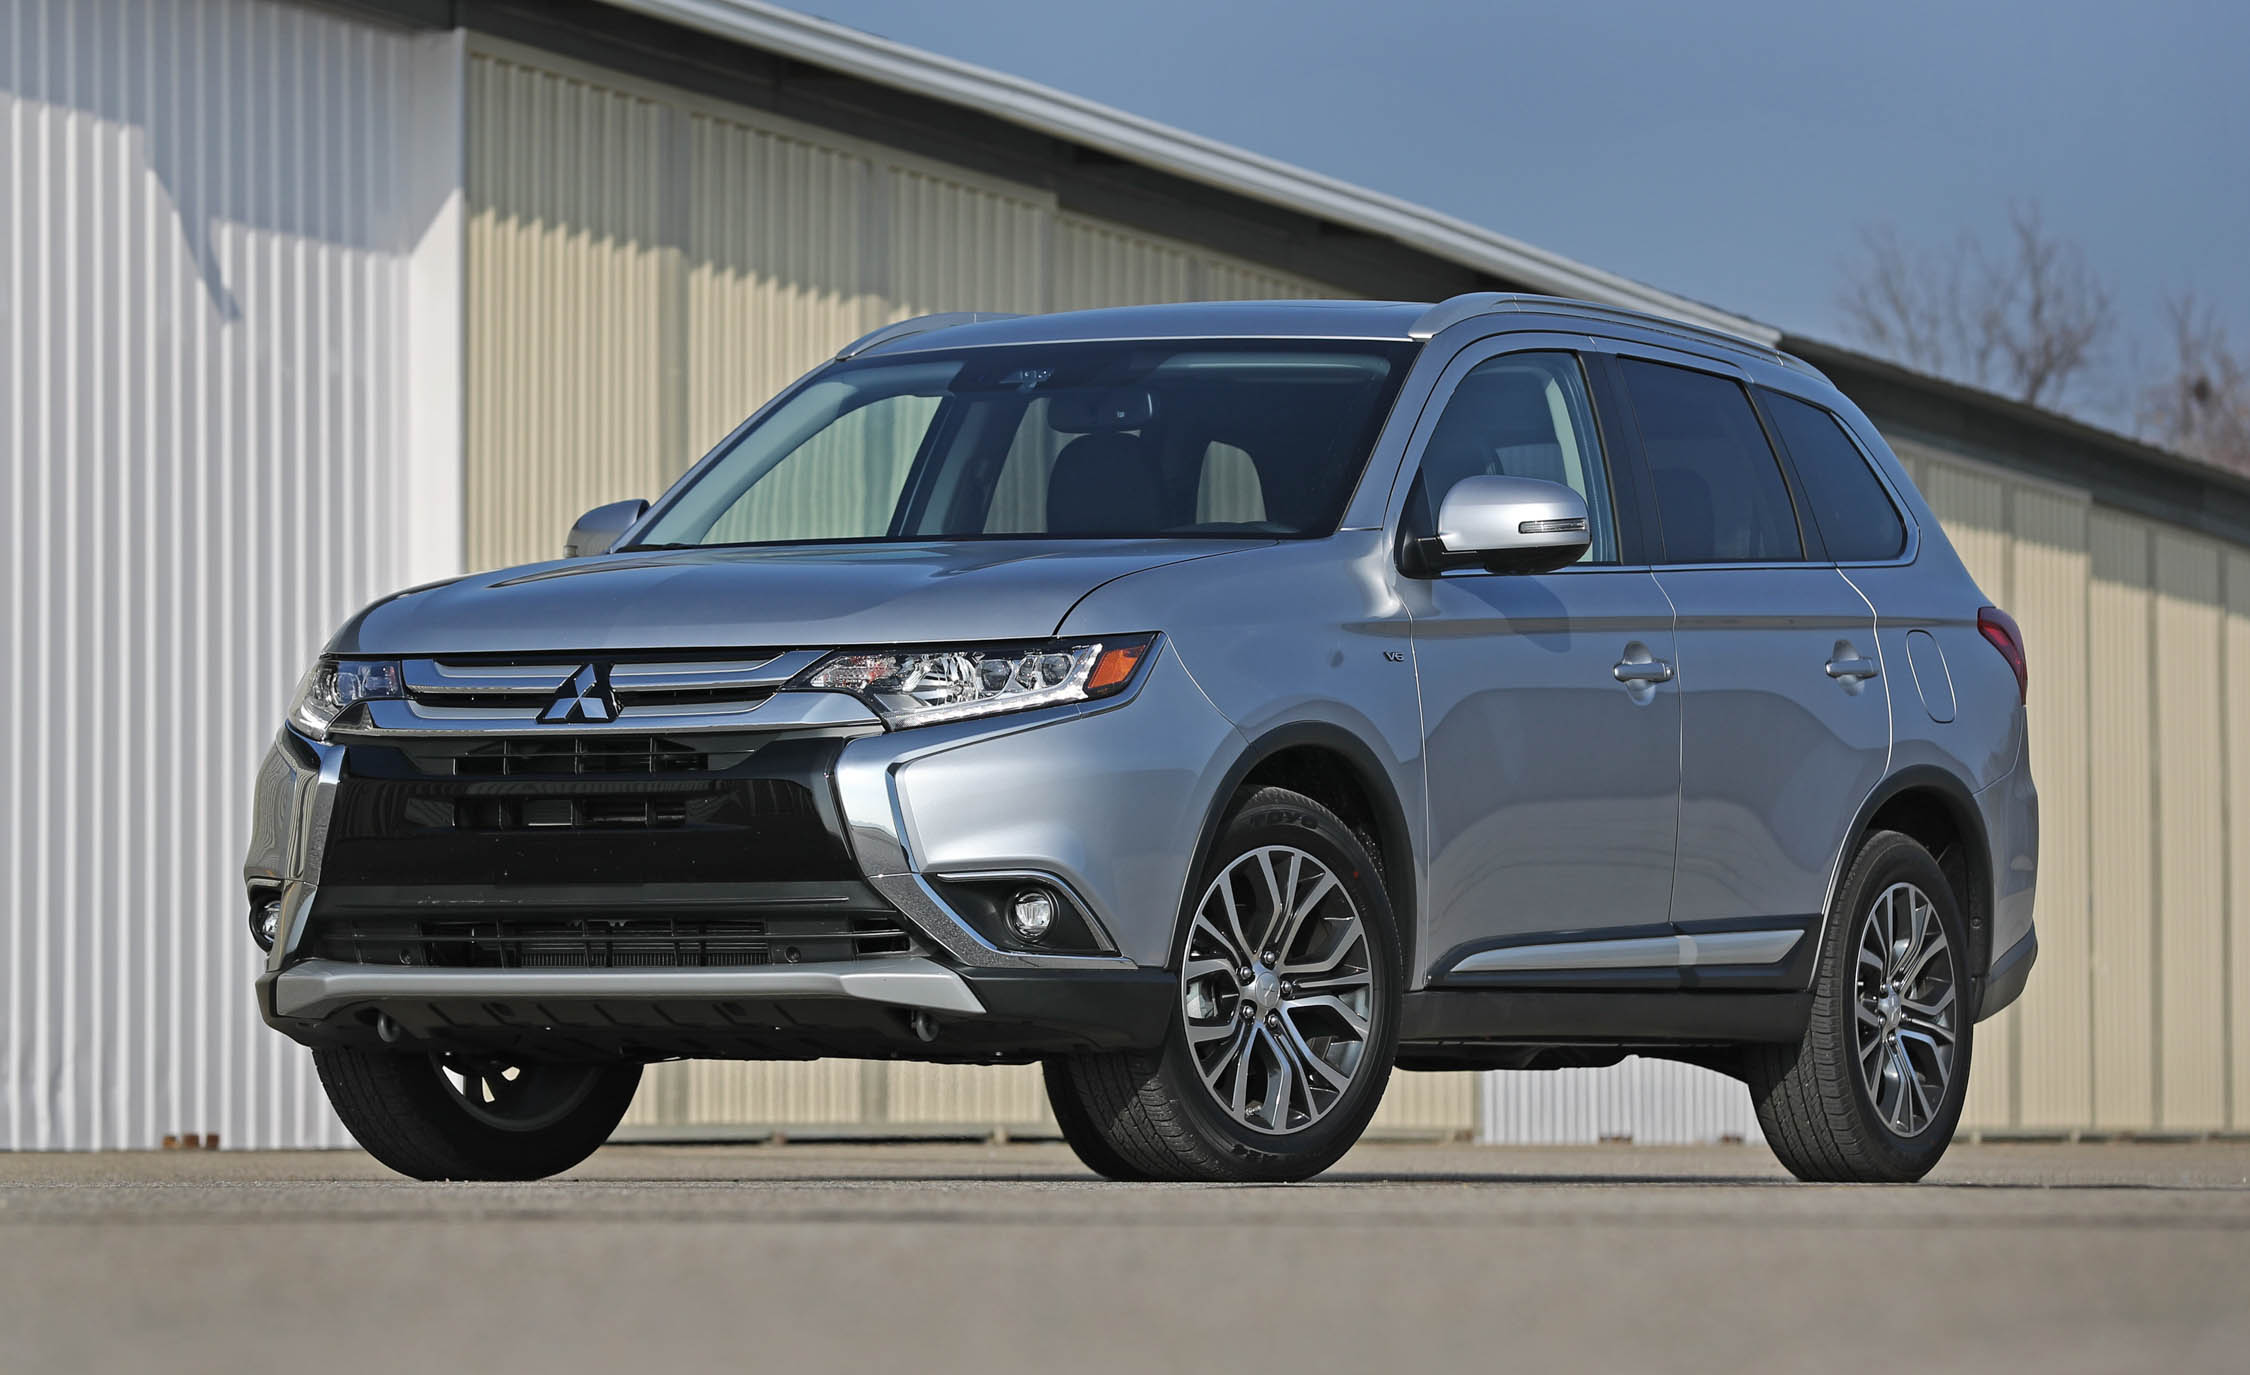 2017 Mitsubishi Outlander Gt Exterior Grey Metallic (Photo 5 of 34)